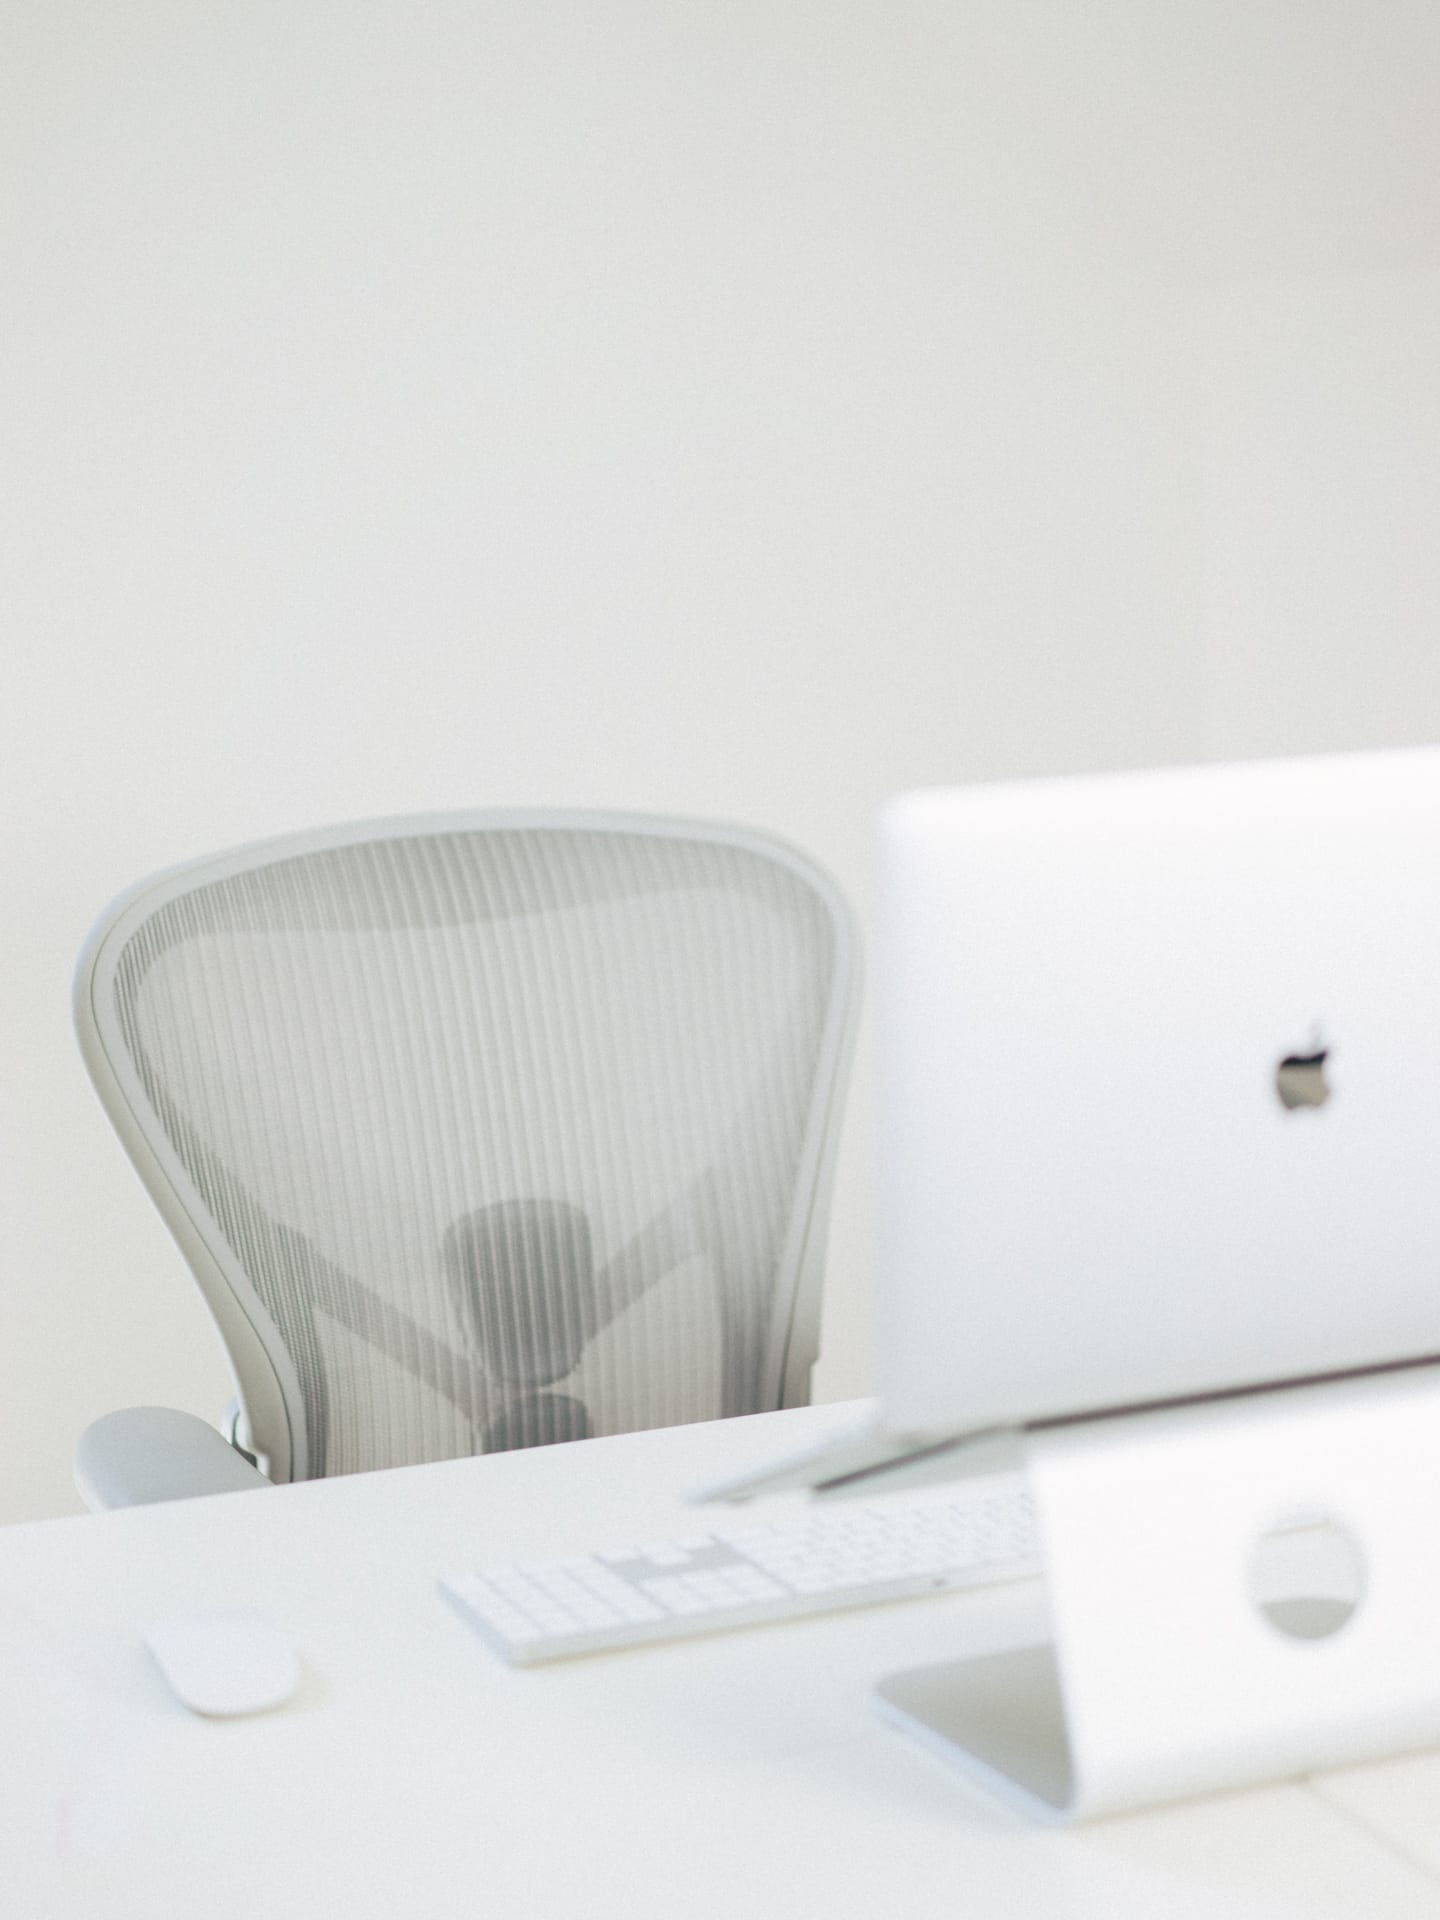 aeron chair review 2016 anti gravity lounge a of the remastered herman miller office